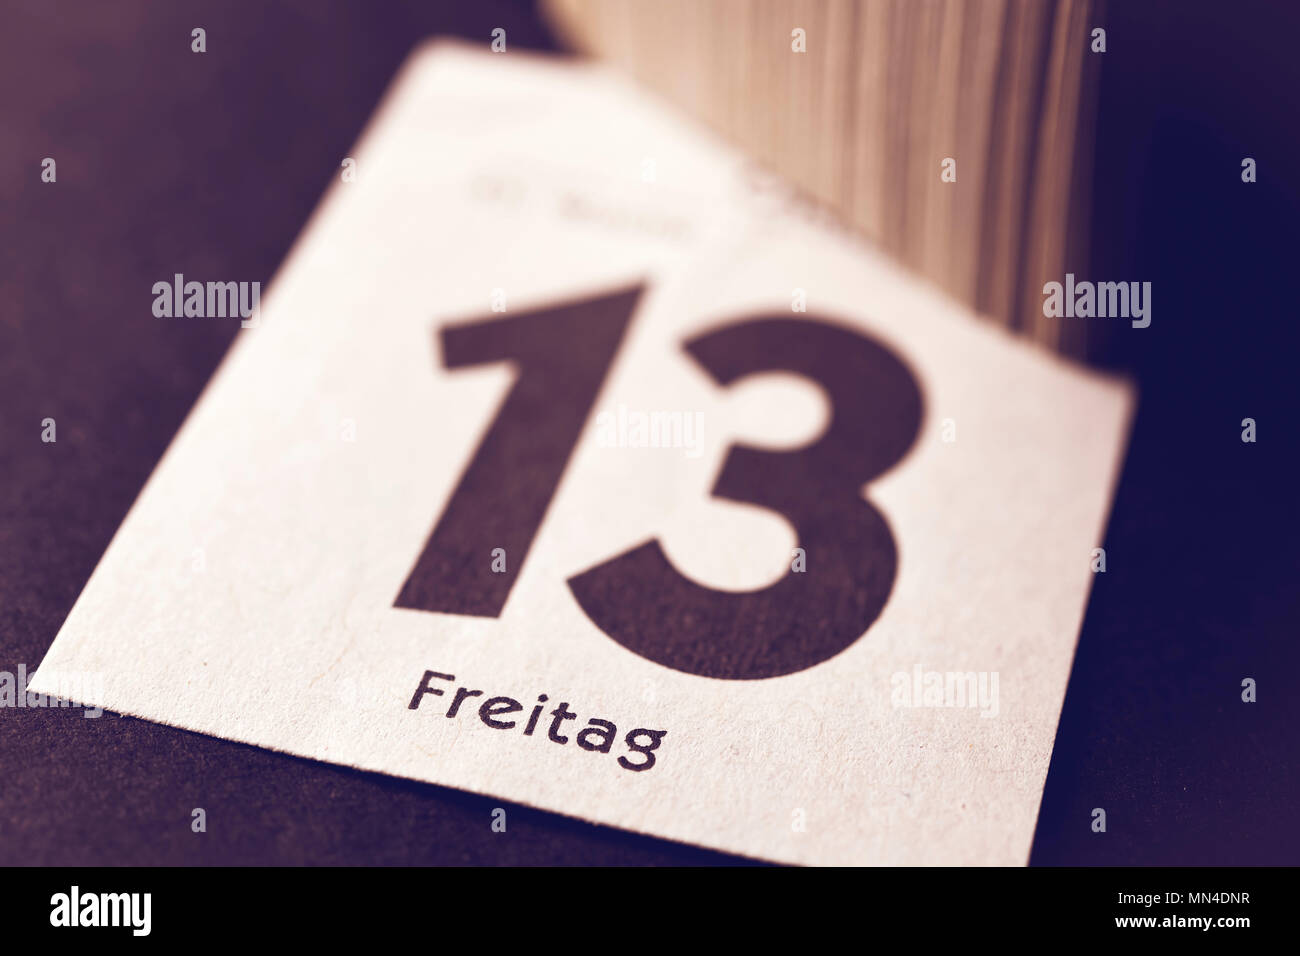 Calendar Sheet Friday the 13., Kalenderblatt Freitag der 13. - Stock Image